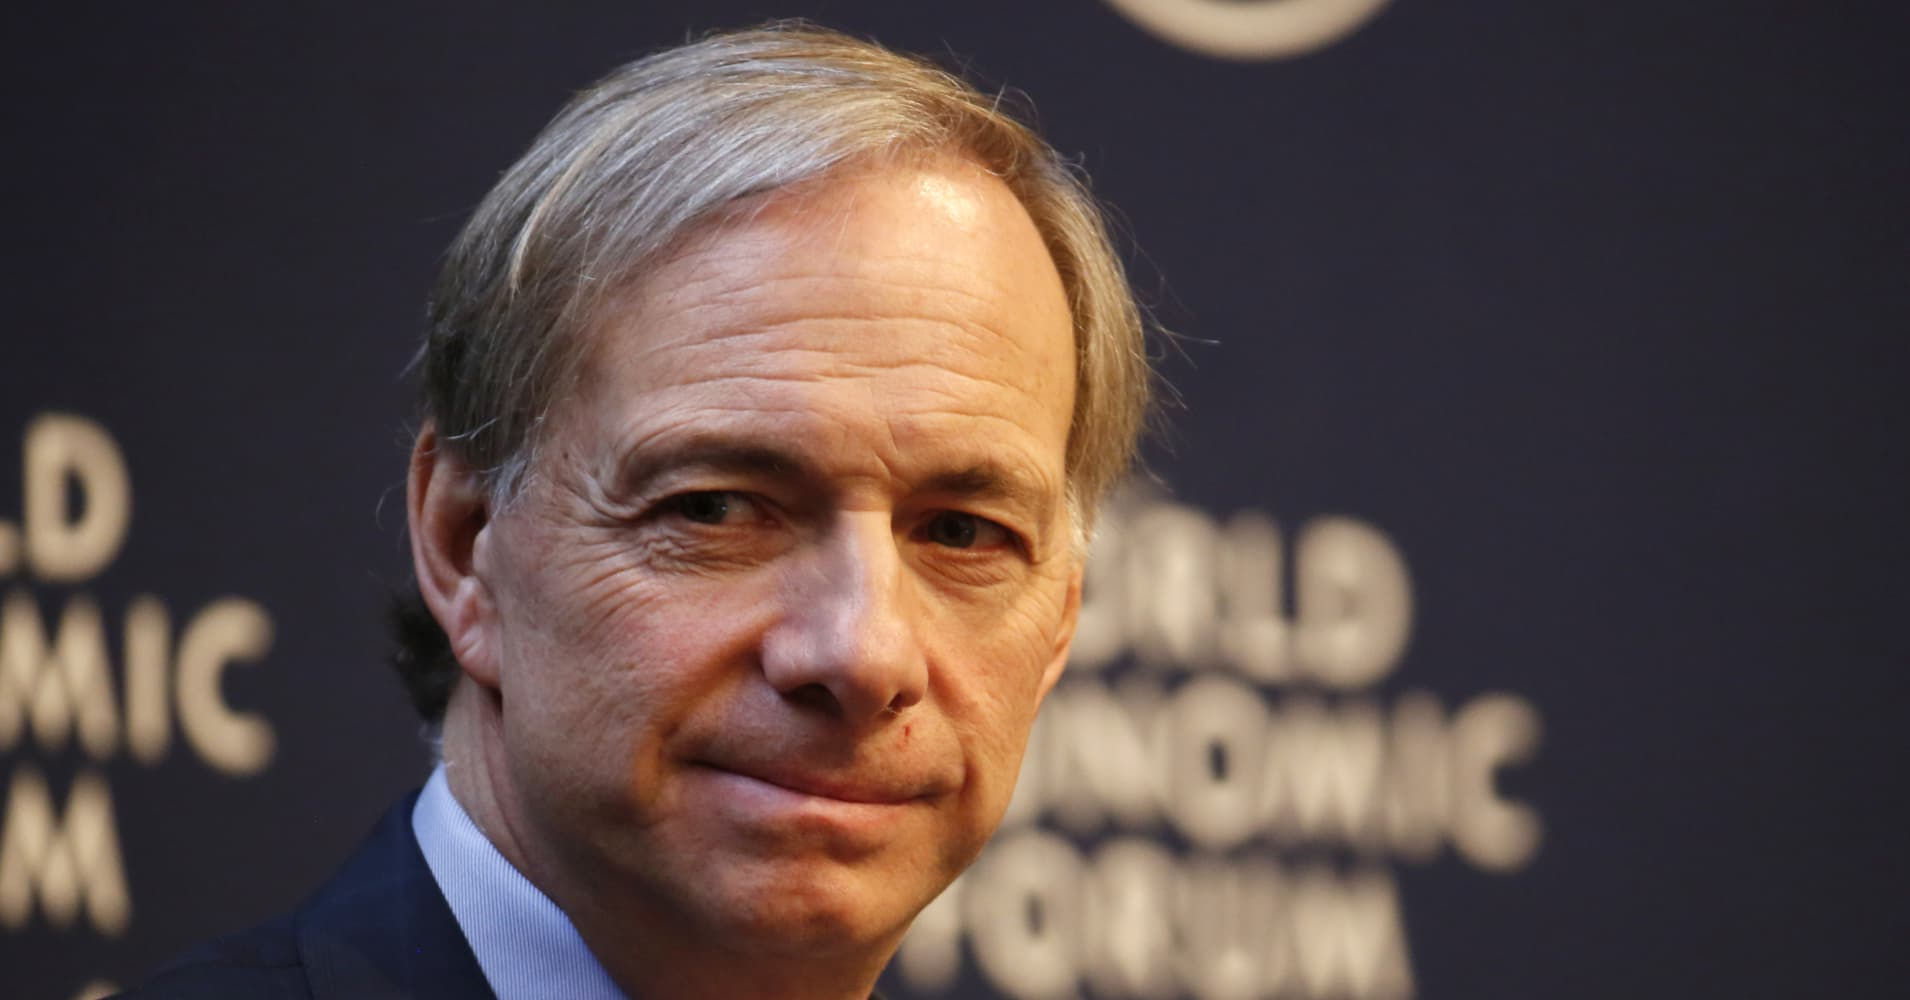 Billionaire Ray Dalio remembers the moment he saw the financial crisis coming: 'This is the big one'